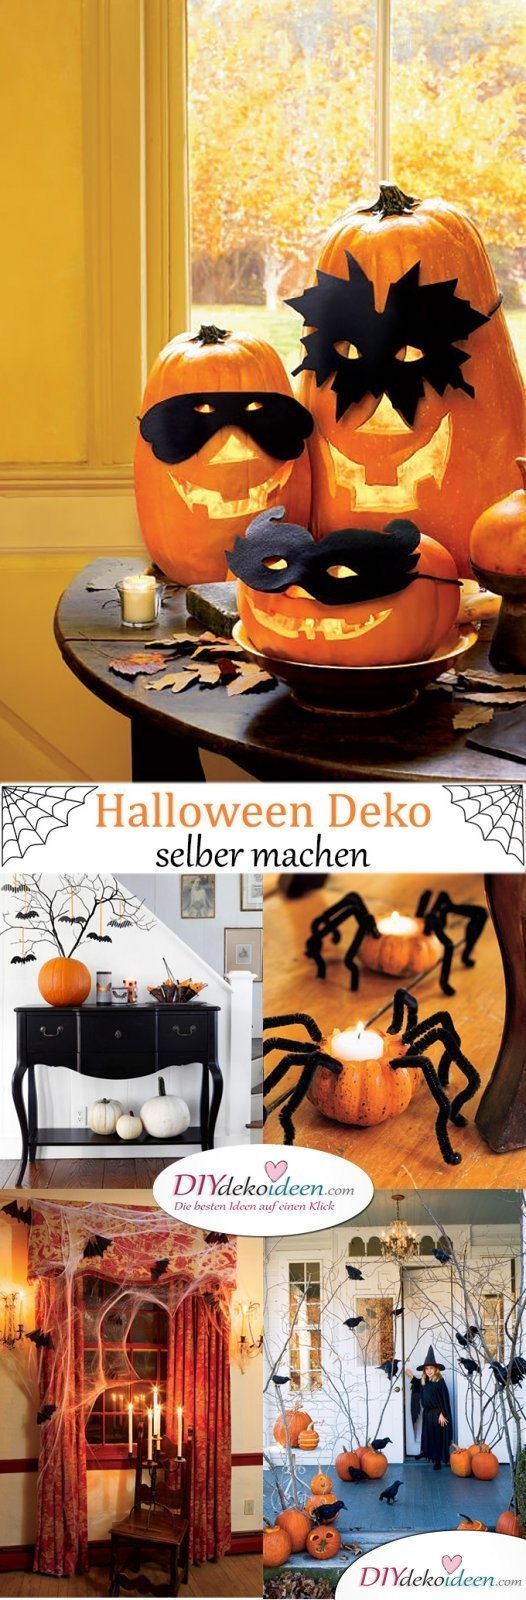 halloween deko selber machen f r eine gruselige party. Black Bedroom Furniture Sets. Home Design Ideas